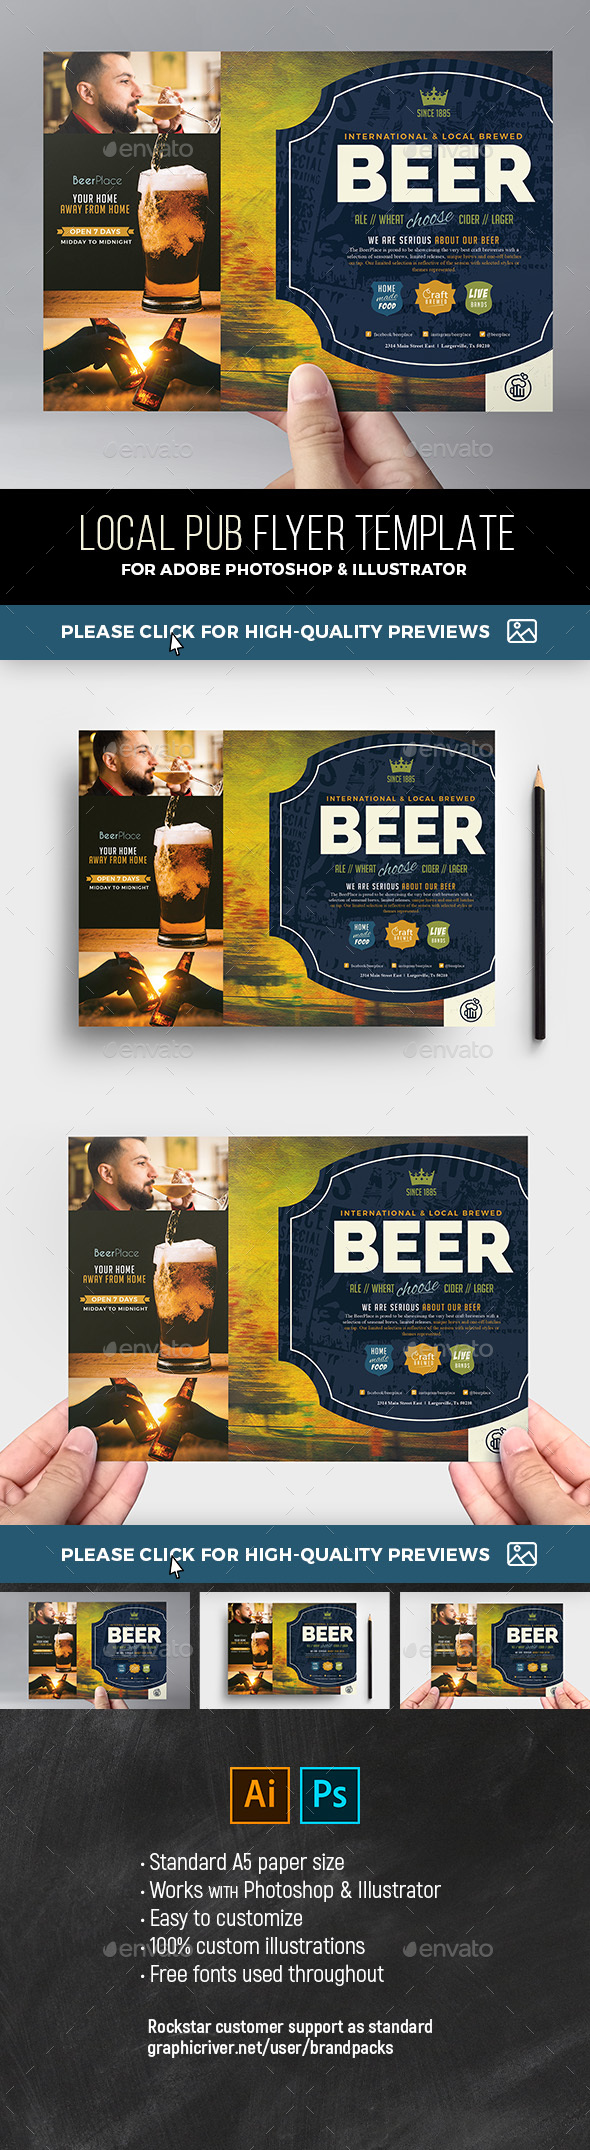 Local Pub Flyer Template - Restaurant Flyers